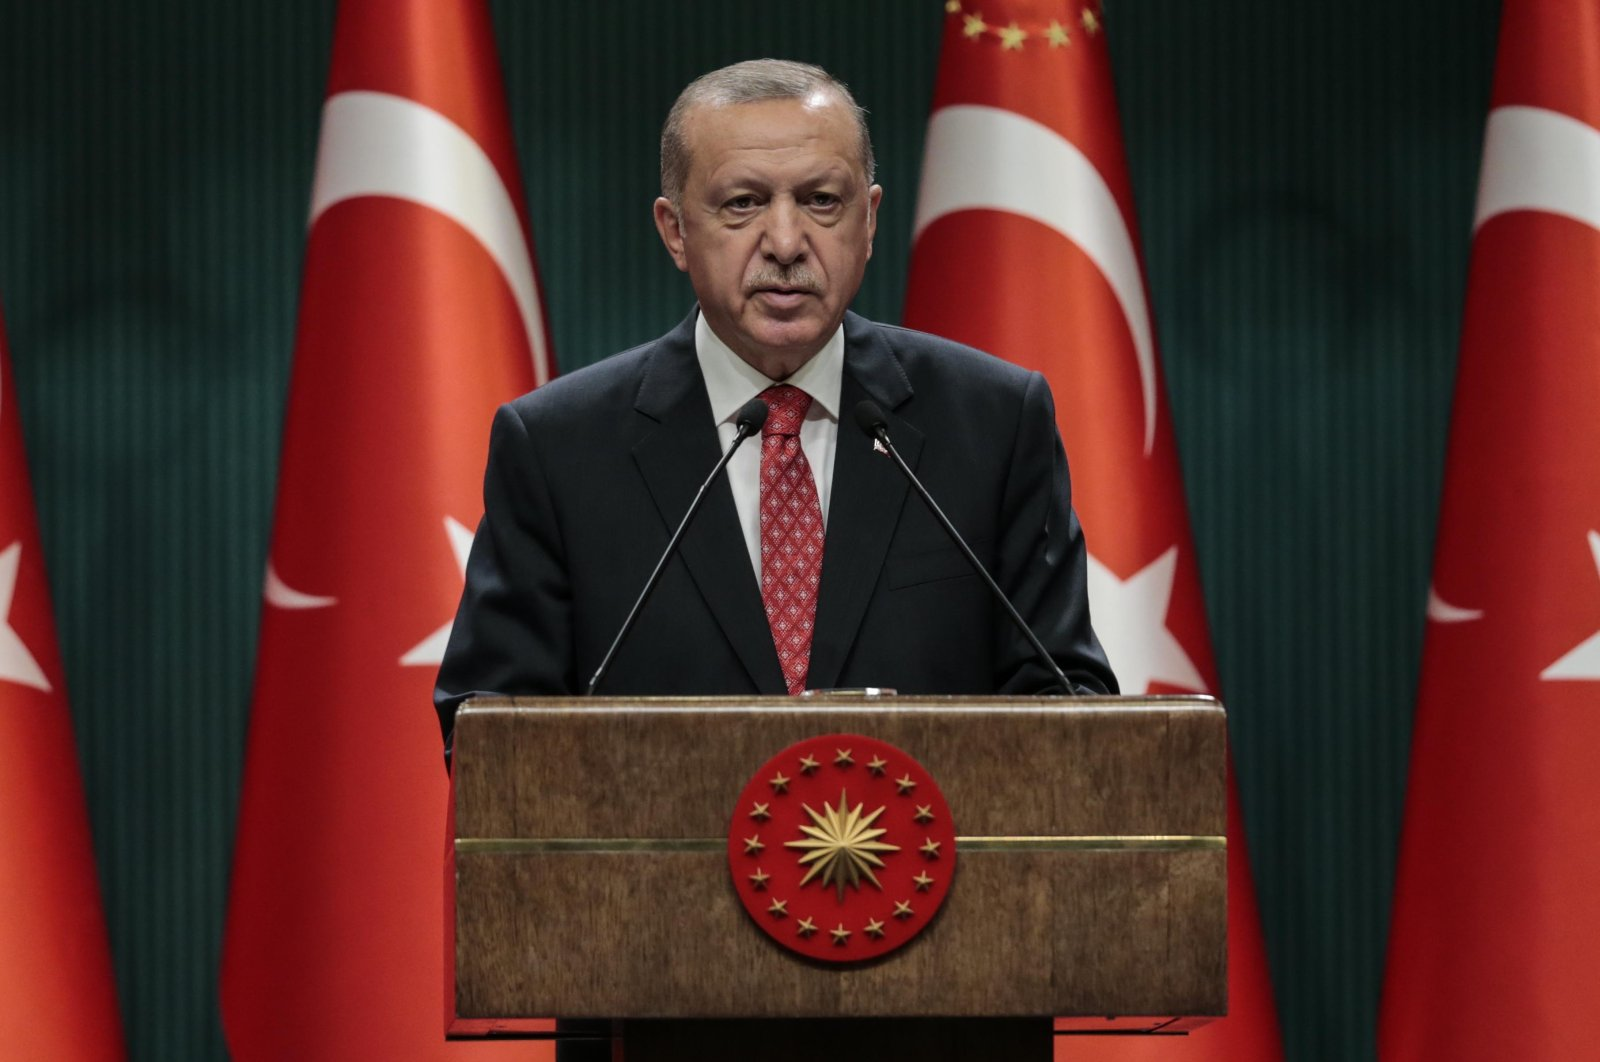 President Recep Tayyip Erdoğan speaks to members of the press after a cabinet meeting at the Presidential Complex in Ankara on August 10, 2020. (AA Photo)